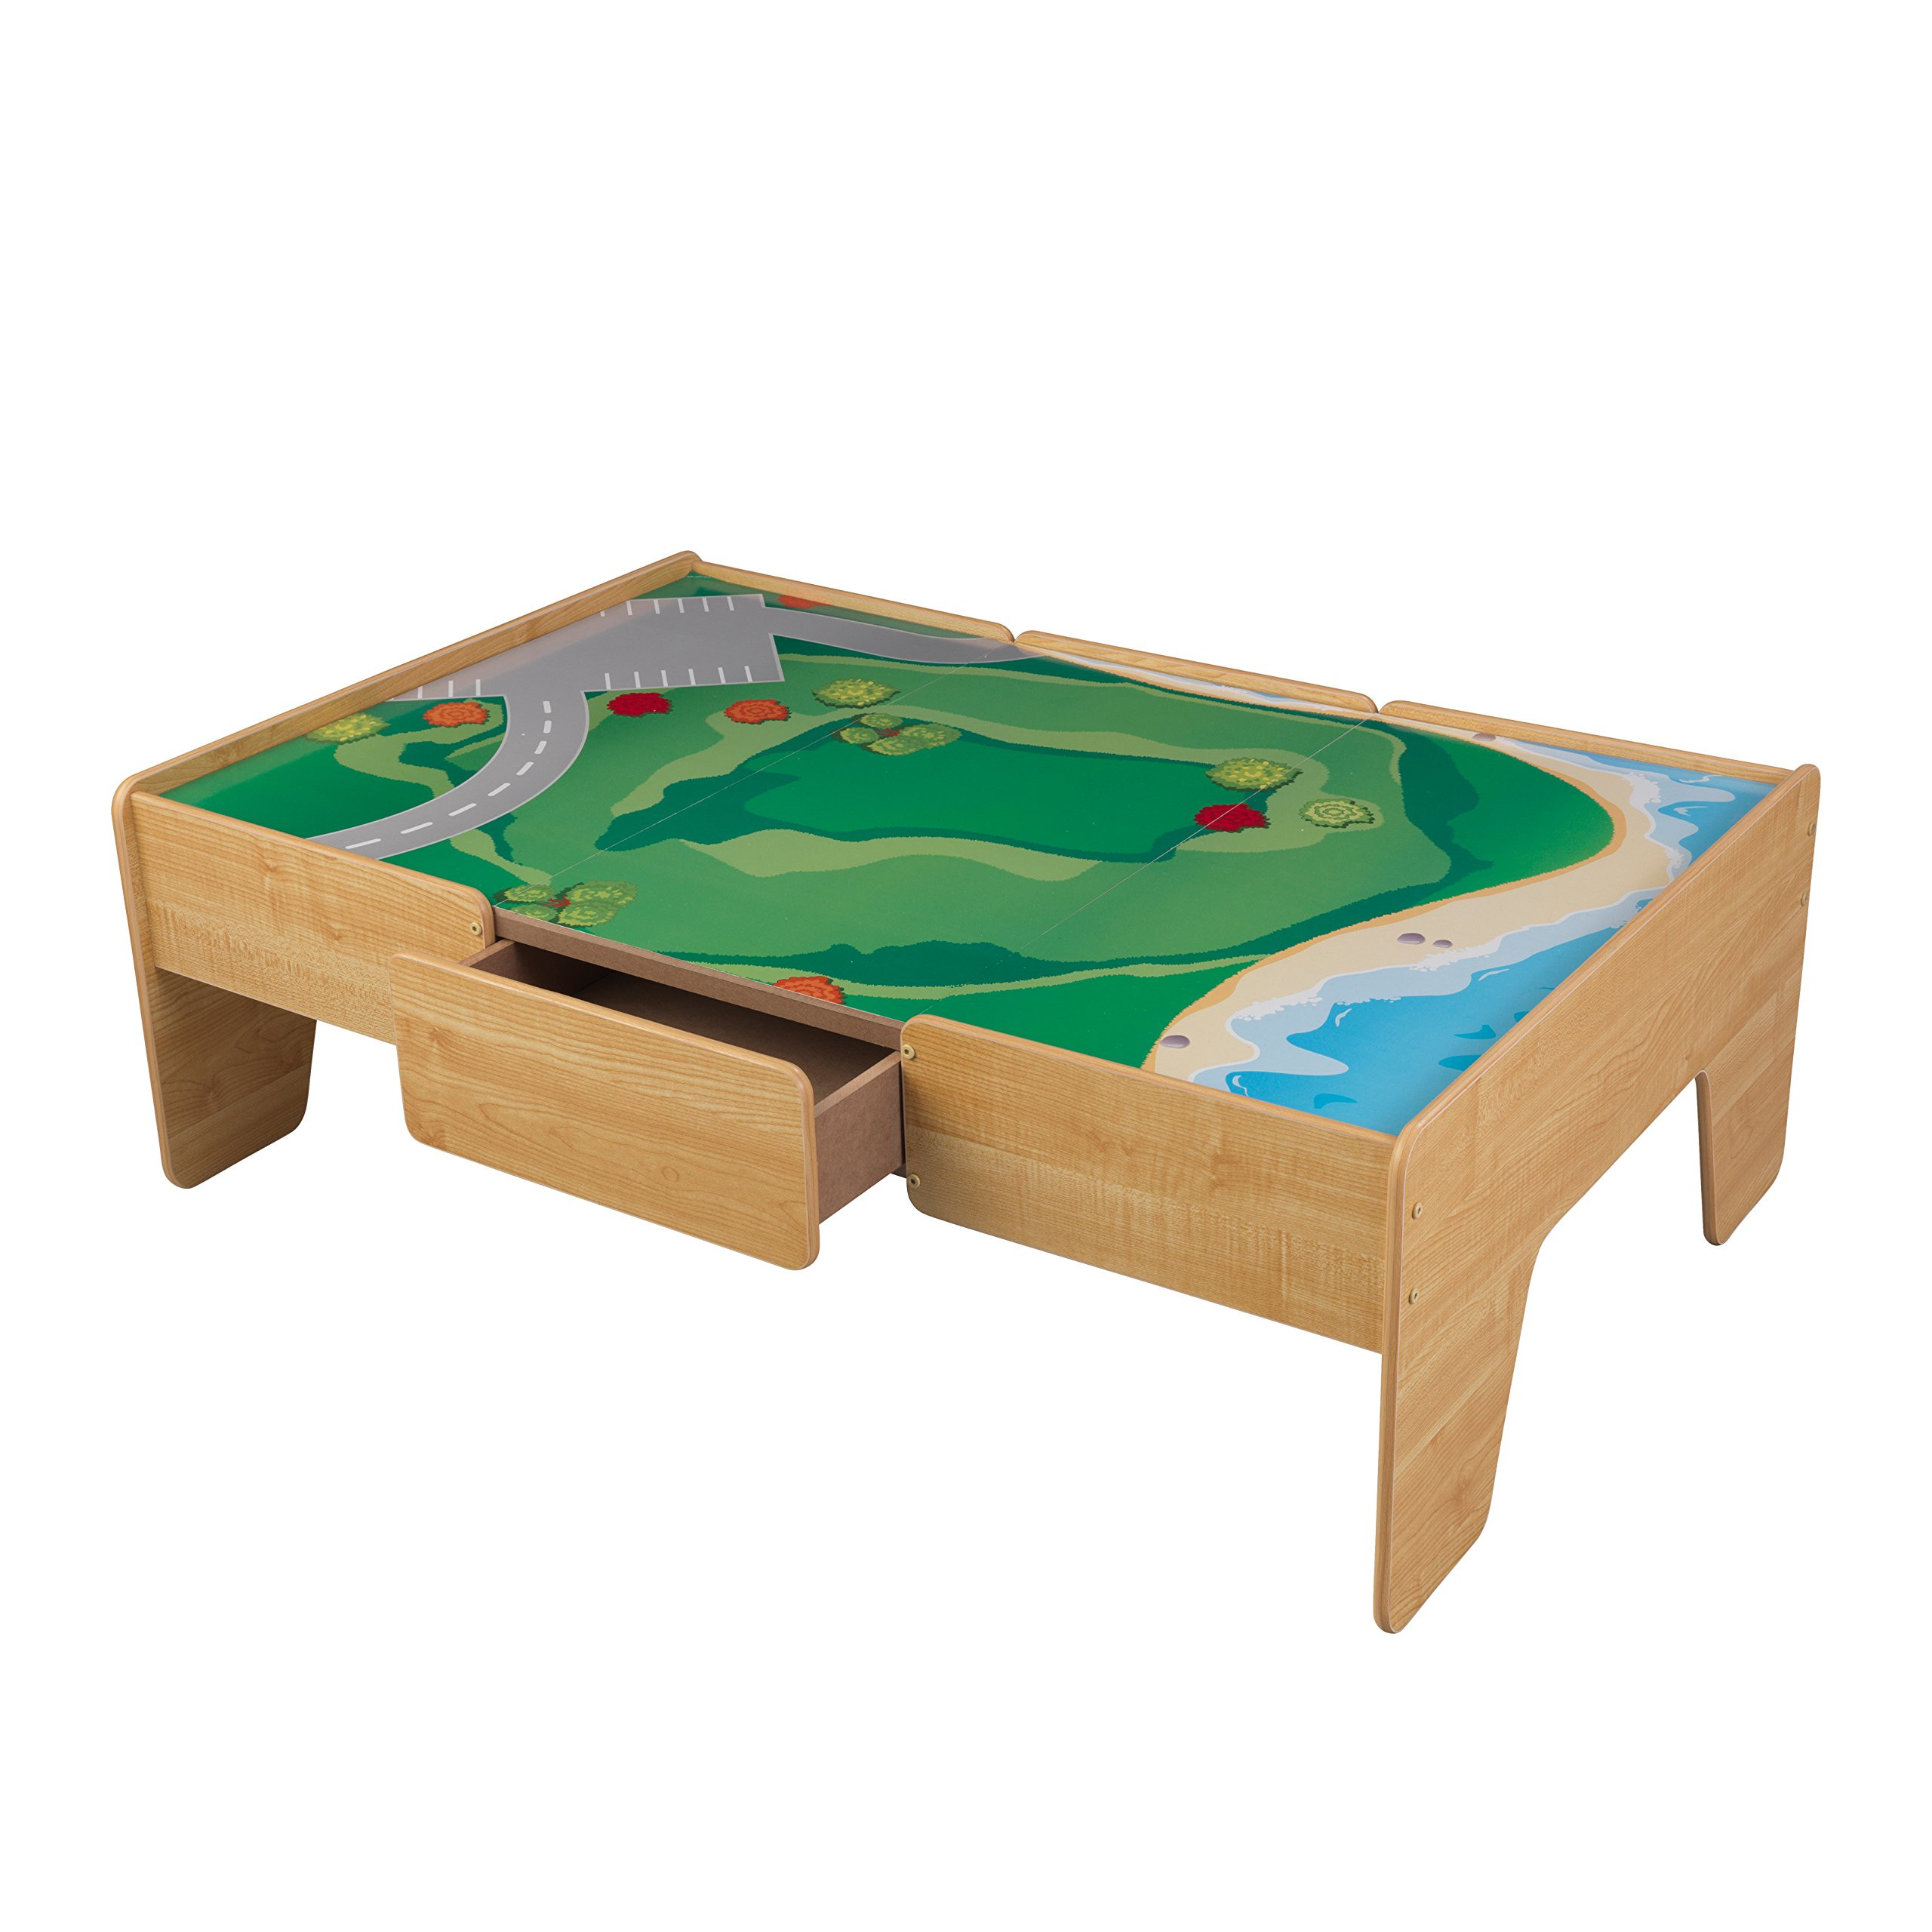 Kids Train Table New Best Train Tables for Kids